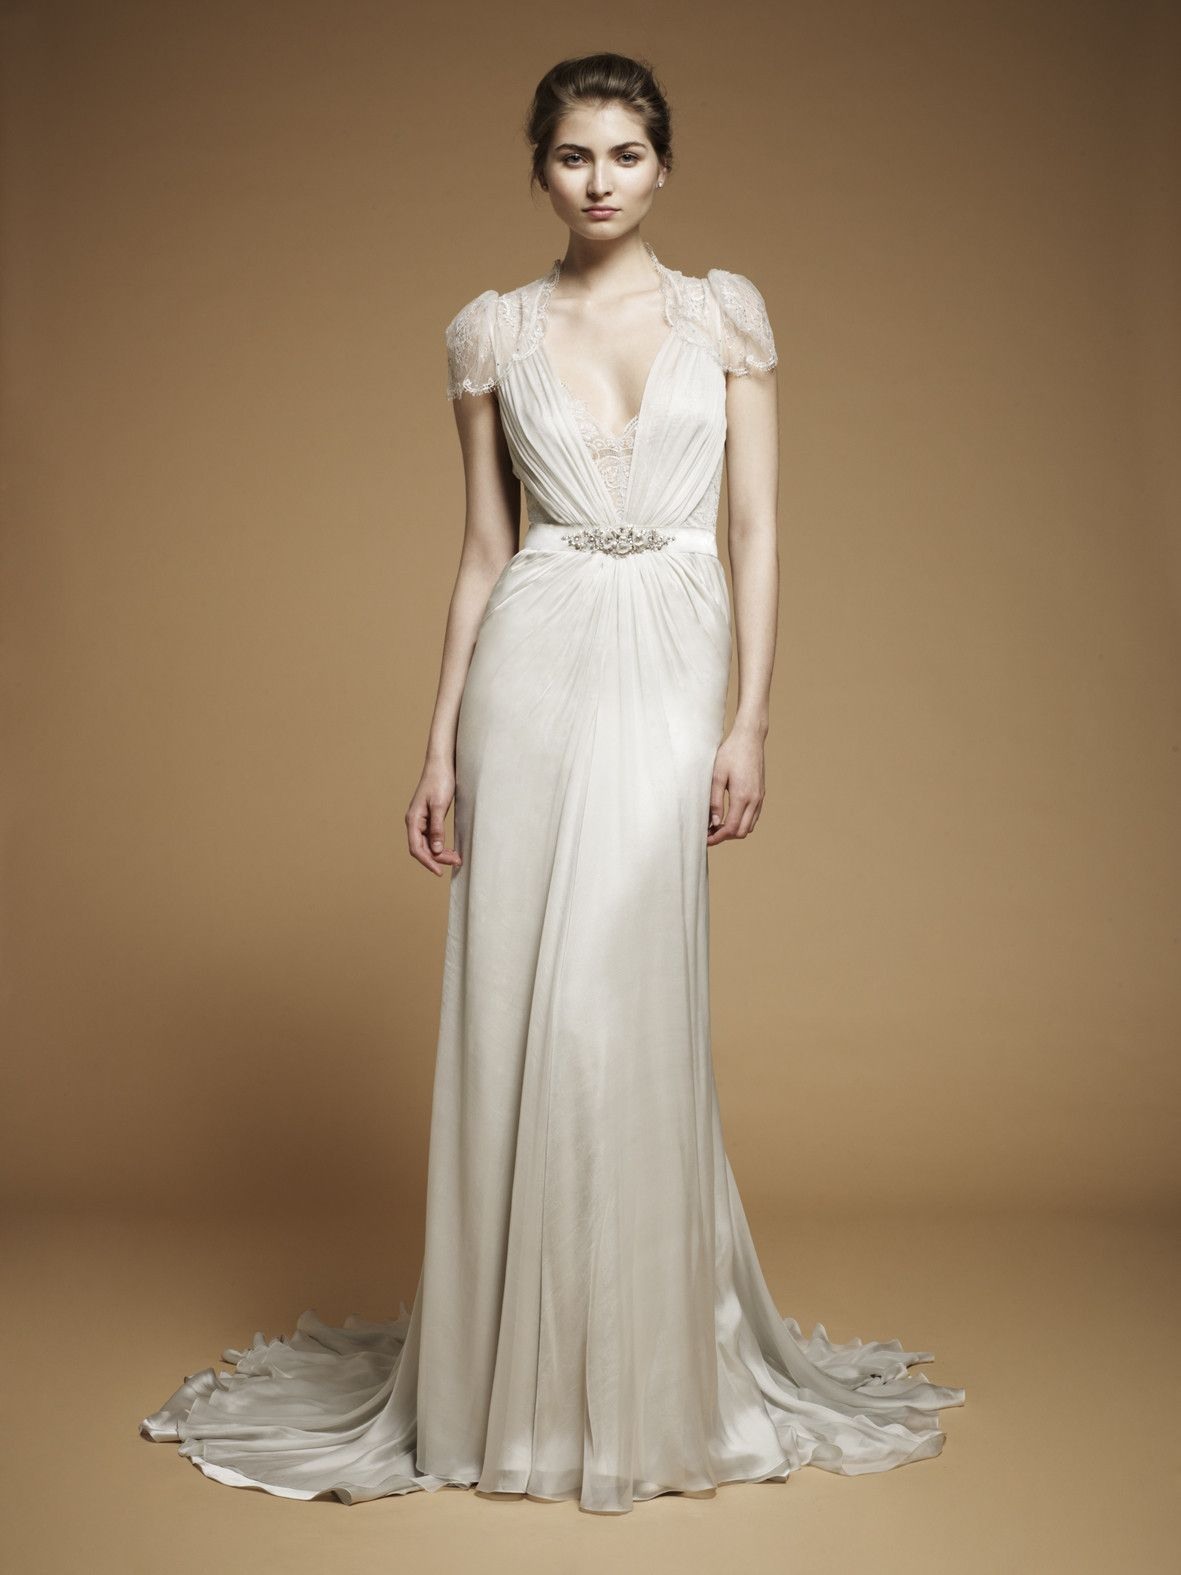 Great gatsby inspired wedding dresses   Wedding Looks Inspired By Oscar Gowns  Jenny packham Wedding